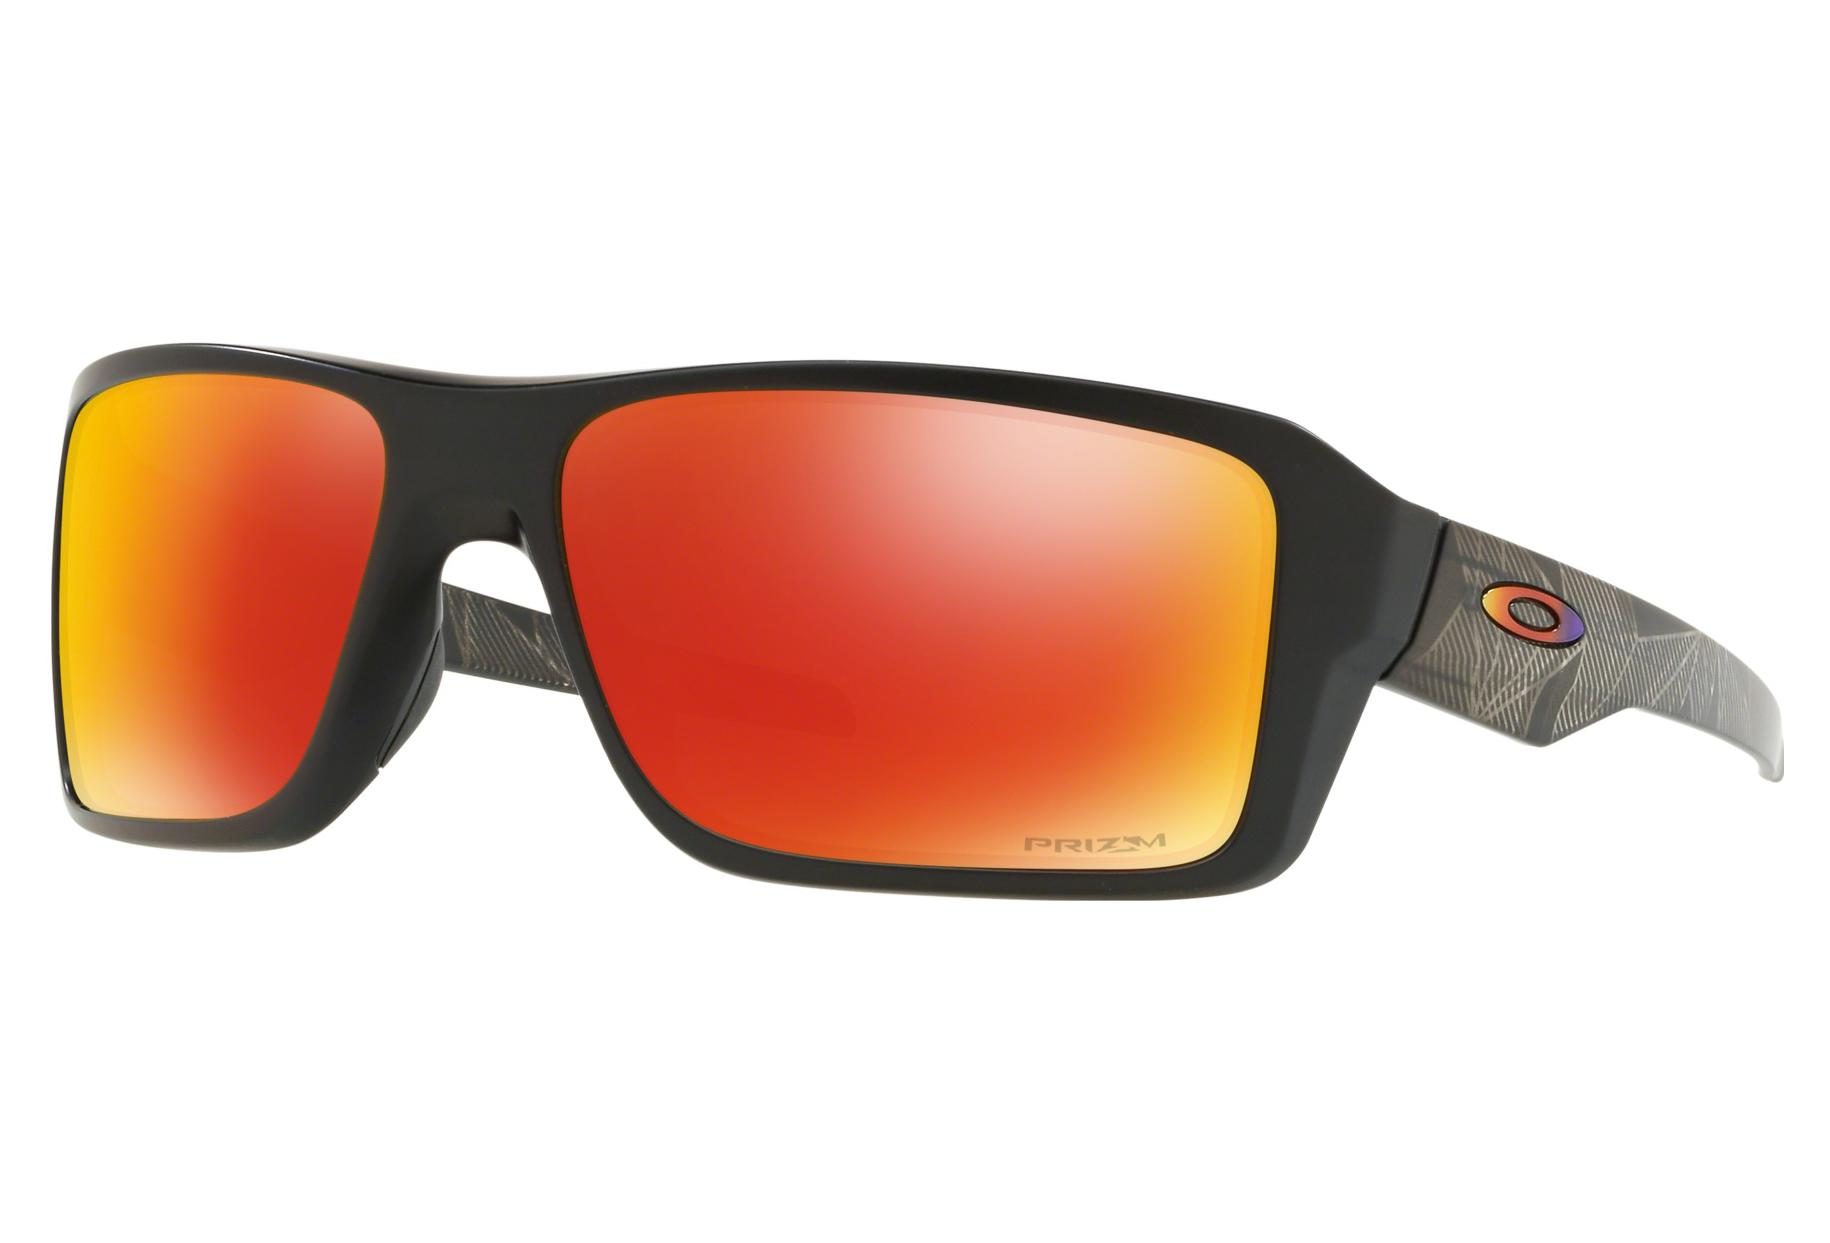 c1bfb2c57e9 Oakley Sunglasses Double Edge Prizmatic Collection   Matte Black Prizmatic    Prizm Ruby Polarized   Ref. OO9380-2366